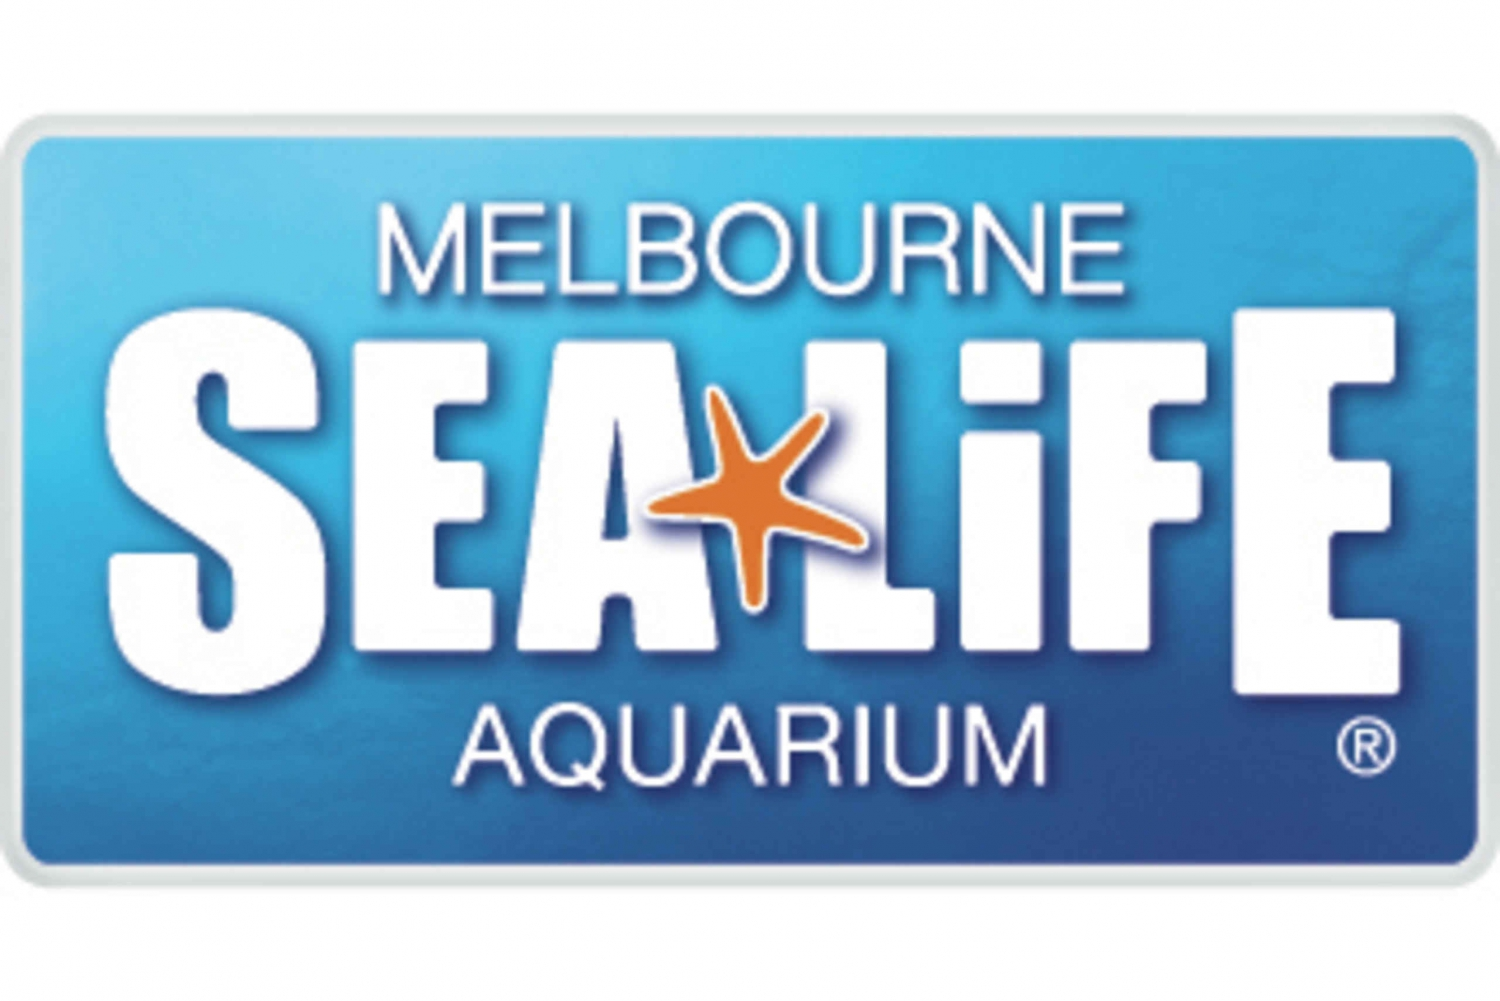 Melbourne Attraction Tickets